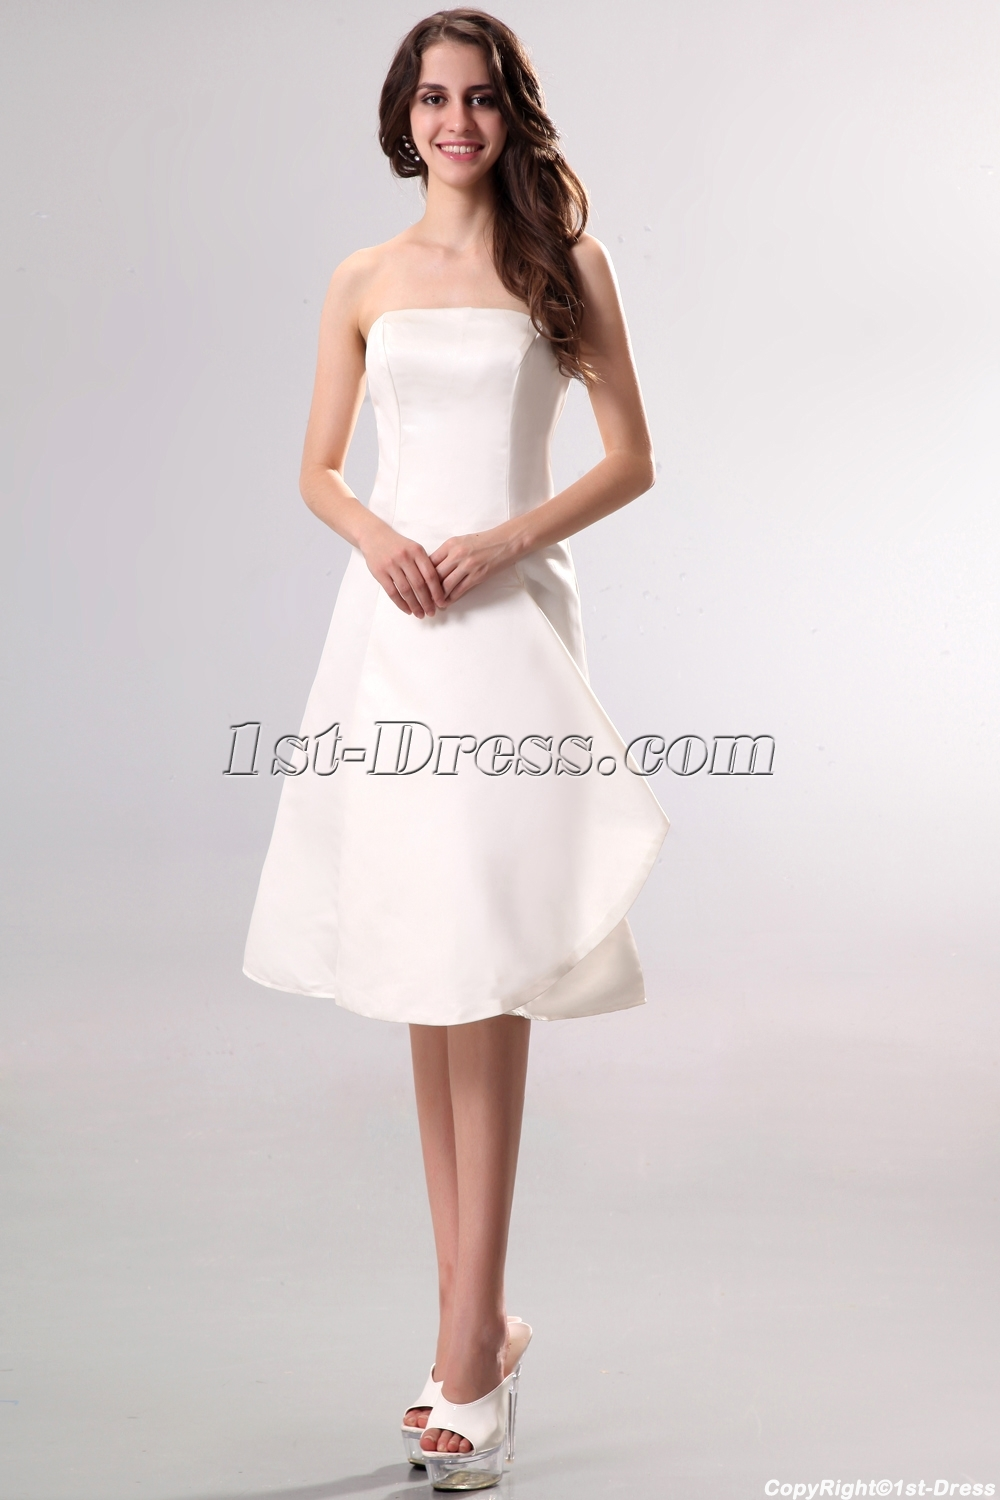 Strapless Simple Short Summer Wedding Dress:1st-dress.com